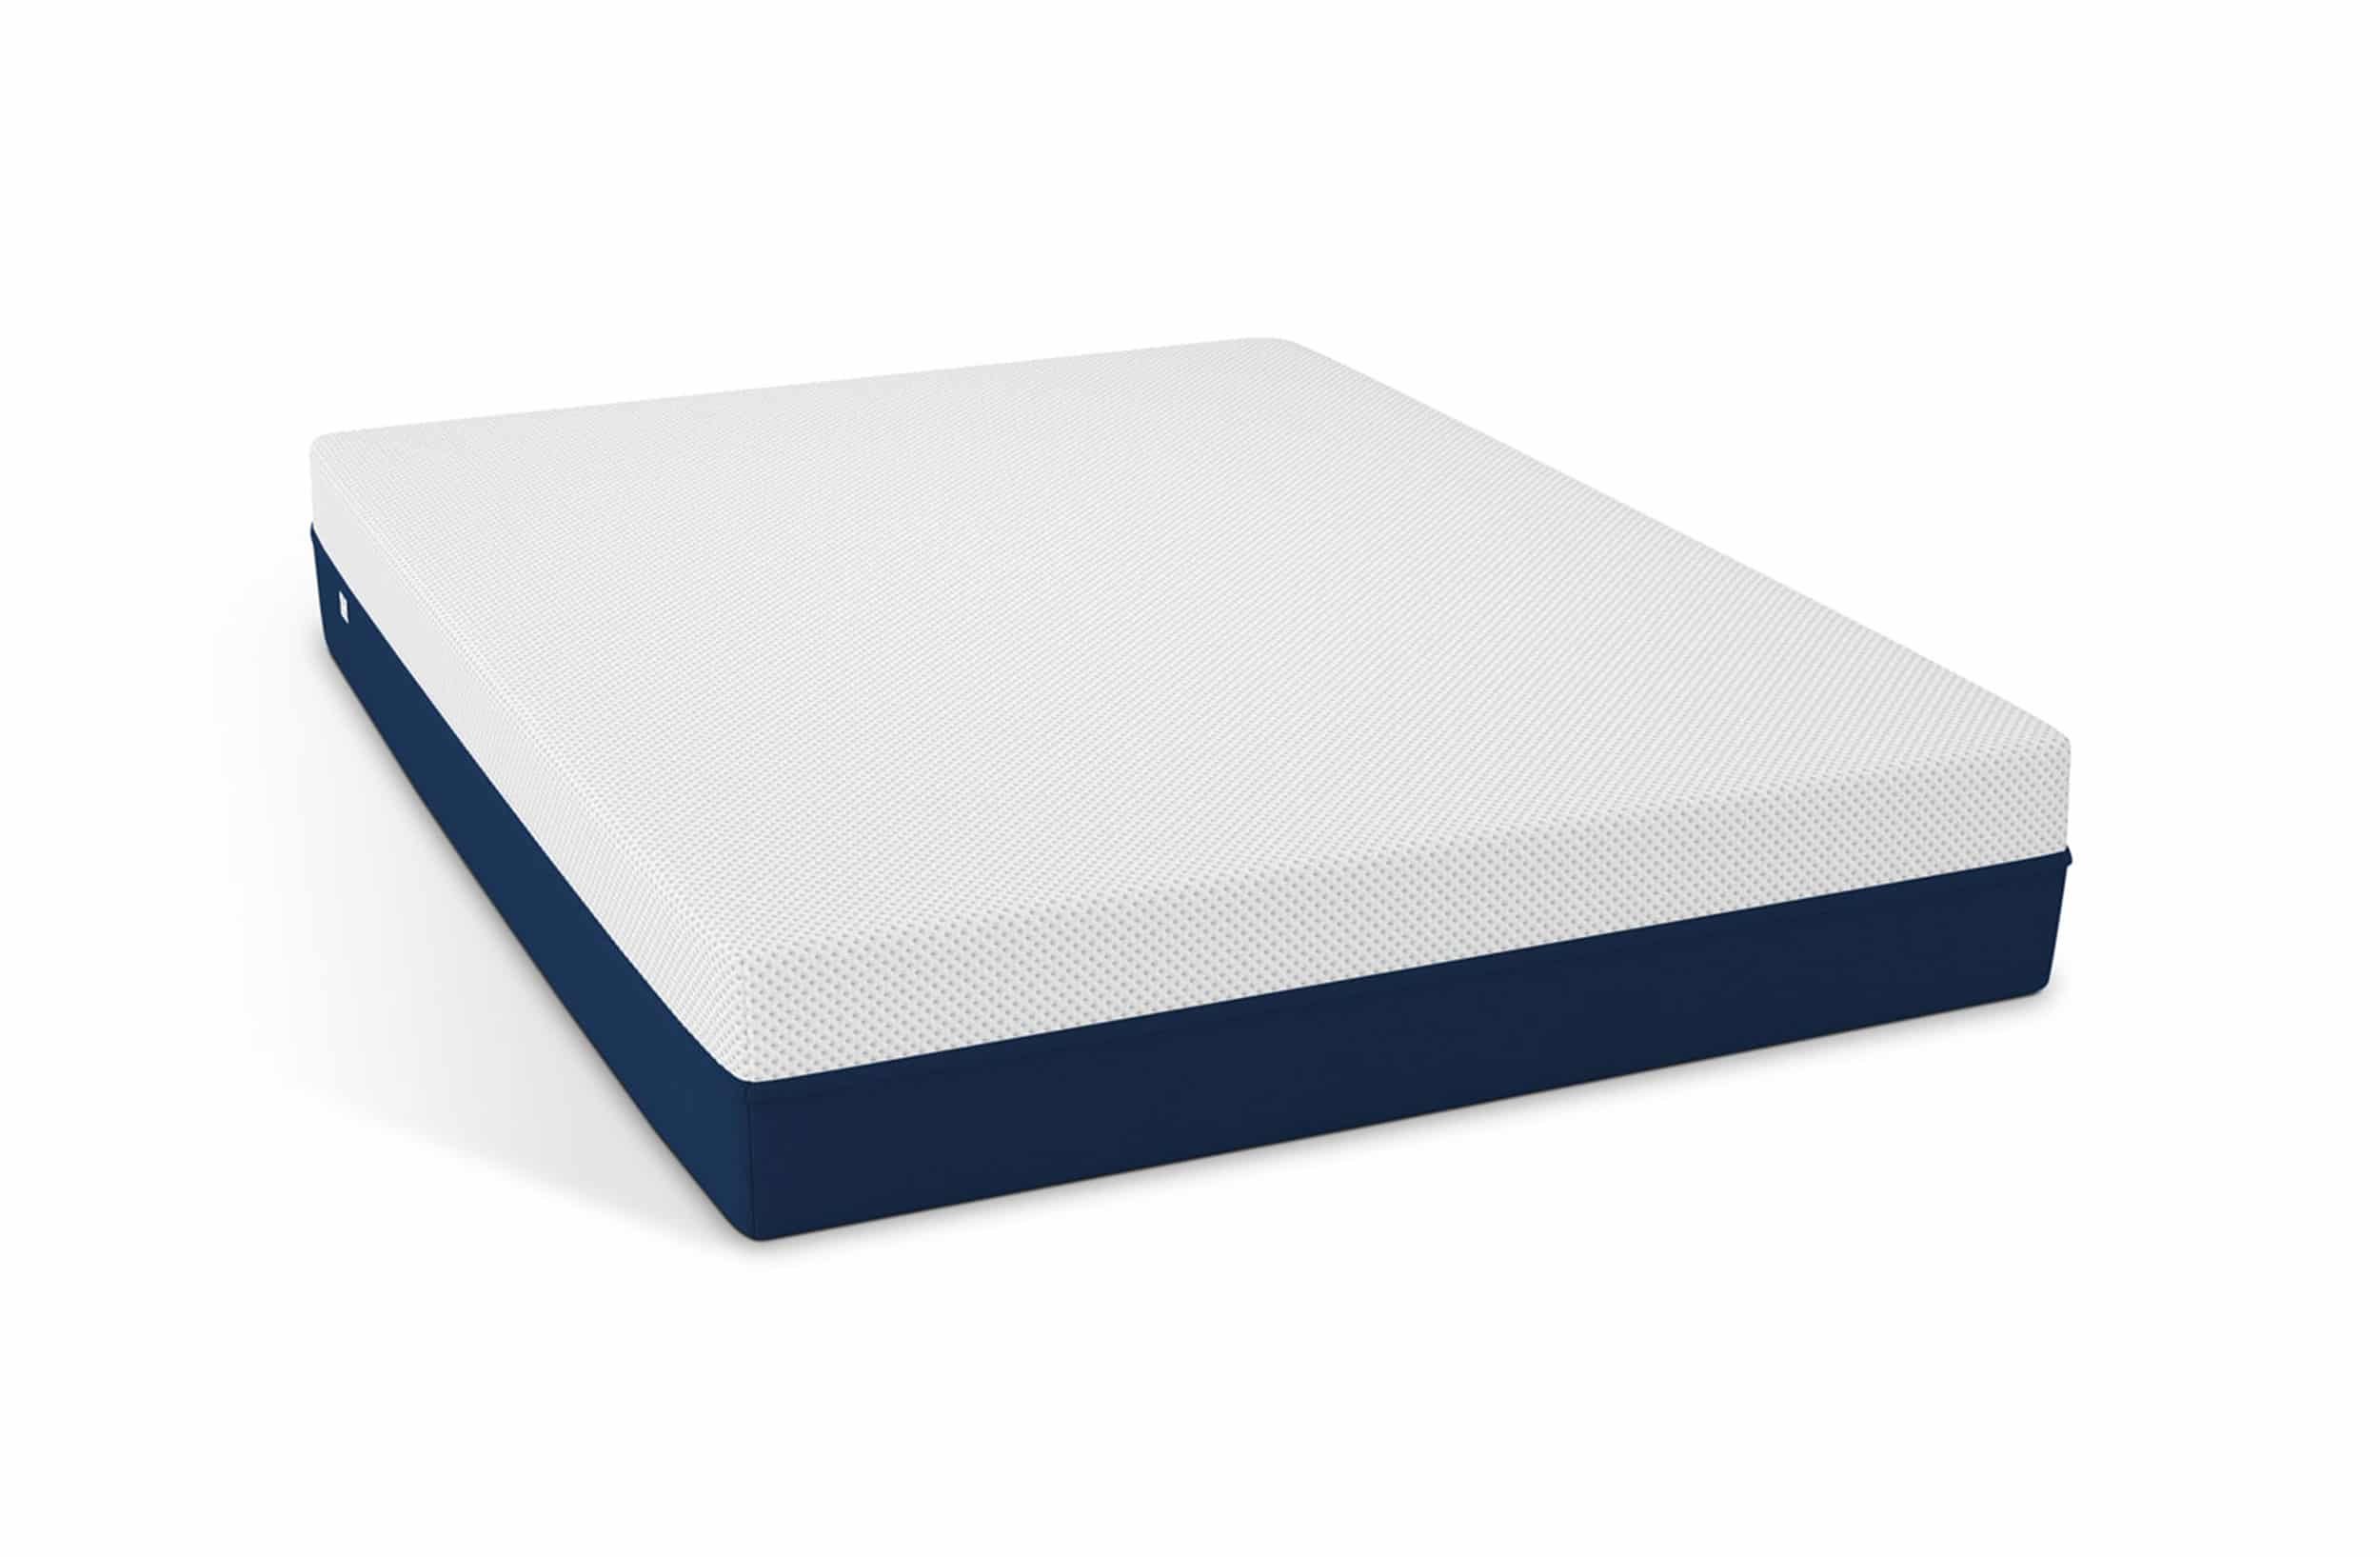 Amerisleep Memory Foam Mattress